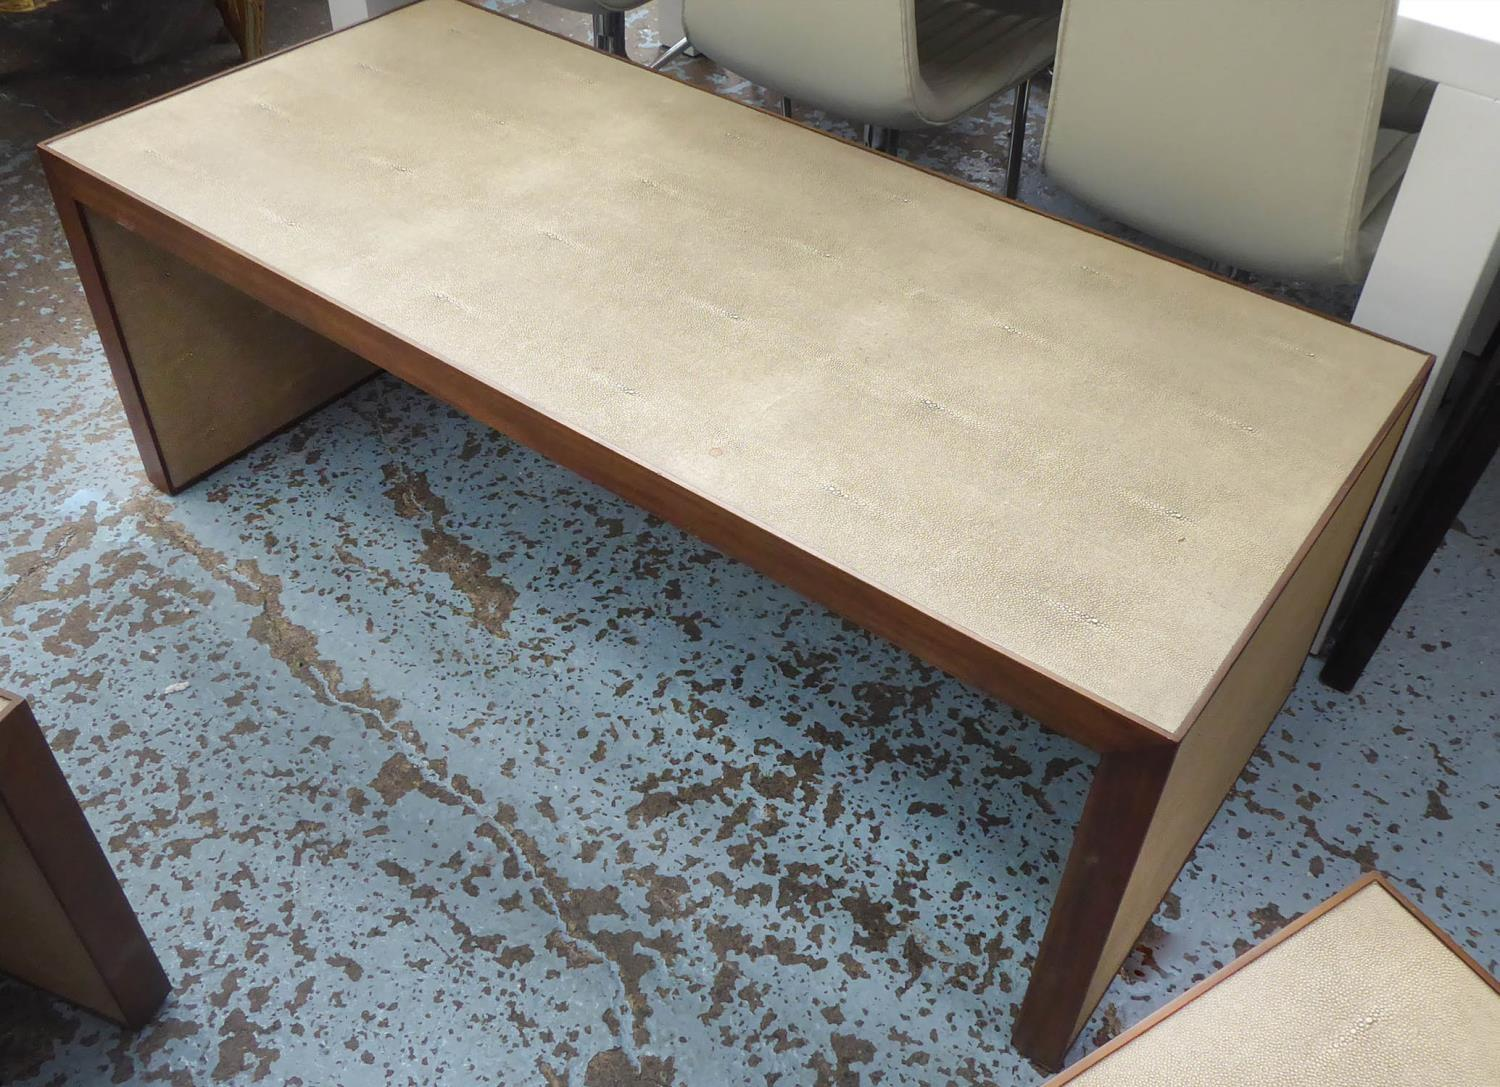 NEST OF TABLES, contemporary, faux shagreen finish, 137.5cm x 67cm x 49cm at largest. - Image 2 of 6